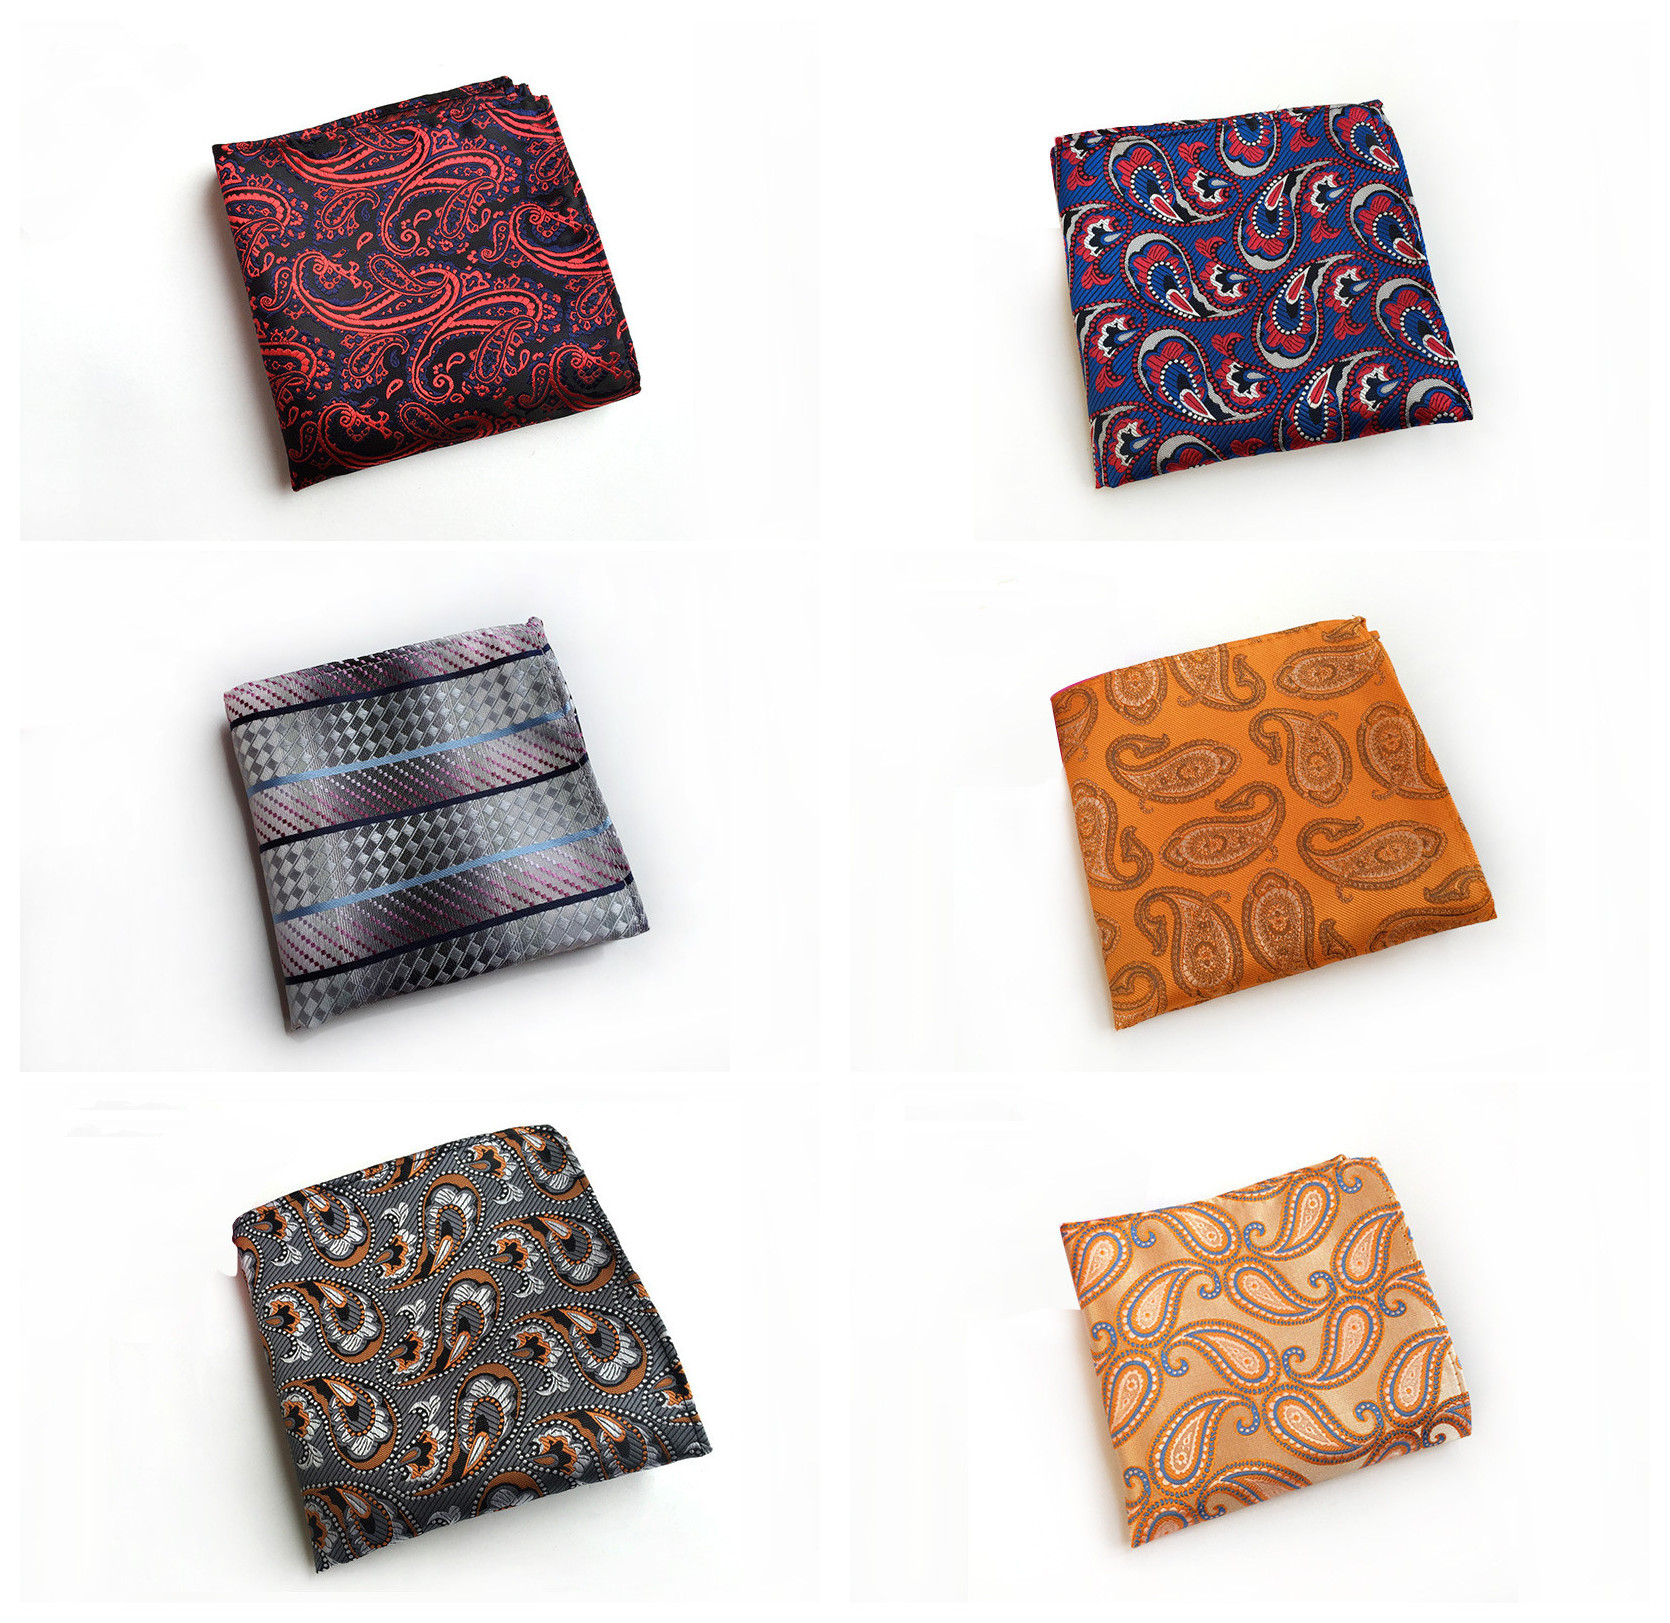 2020 Explosion Polyester Material Accessories Pocket Towel Quality Business Men's Simple Personality Handkerchief Pocket Towel